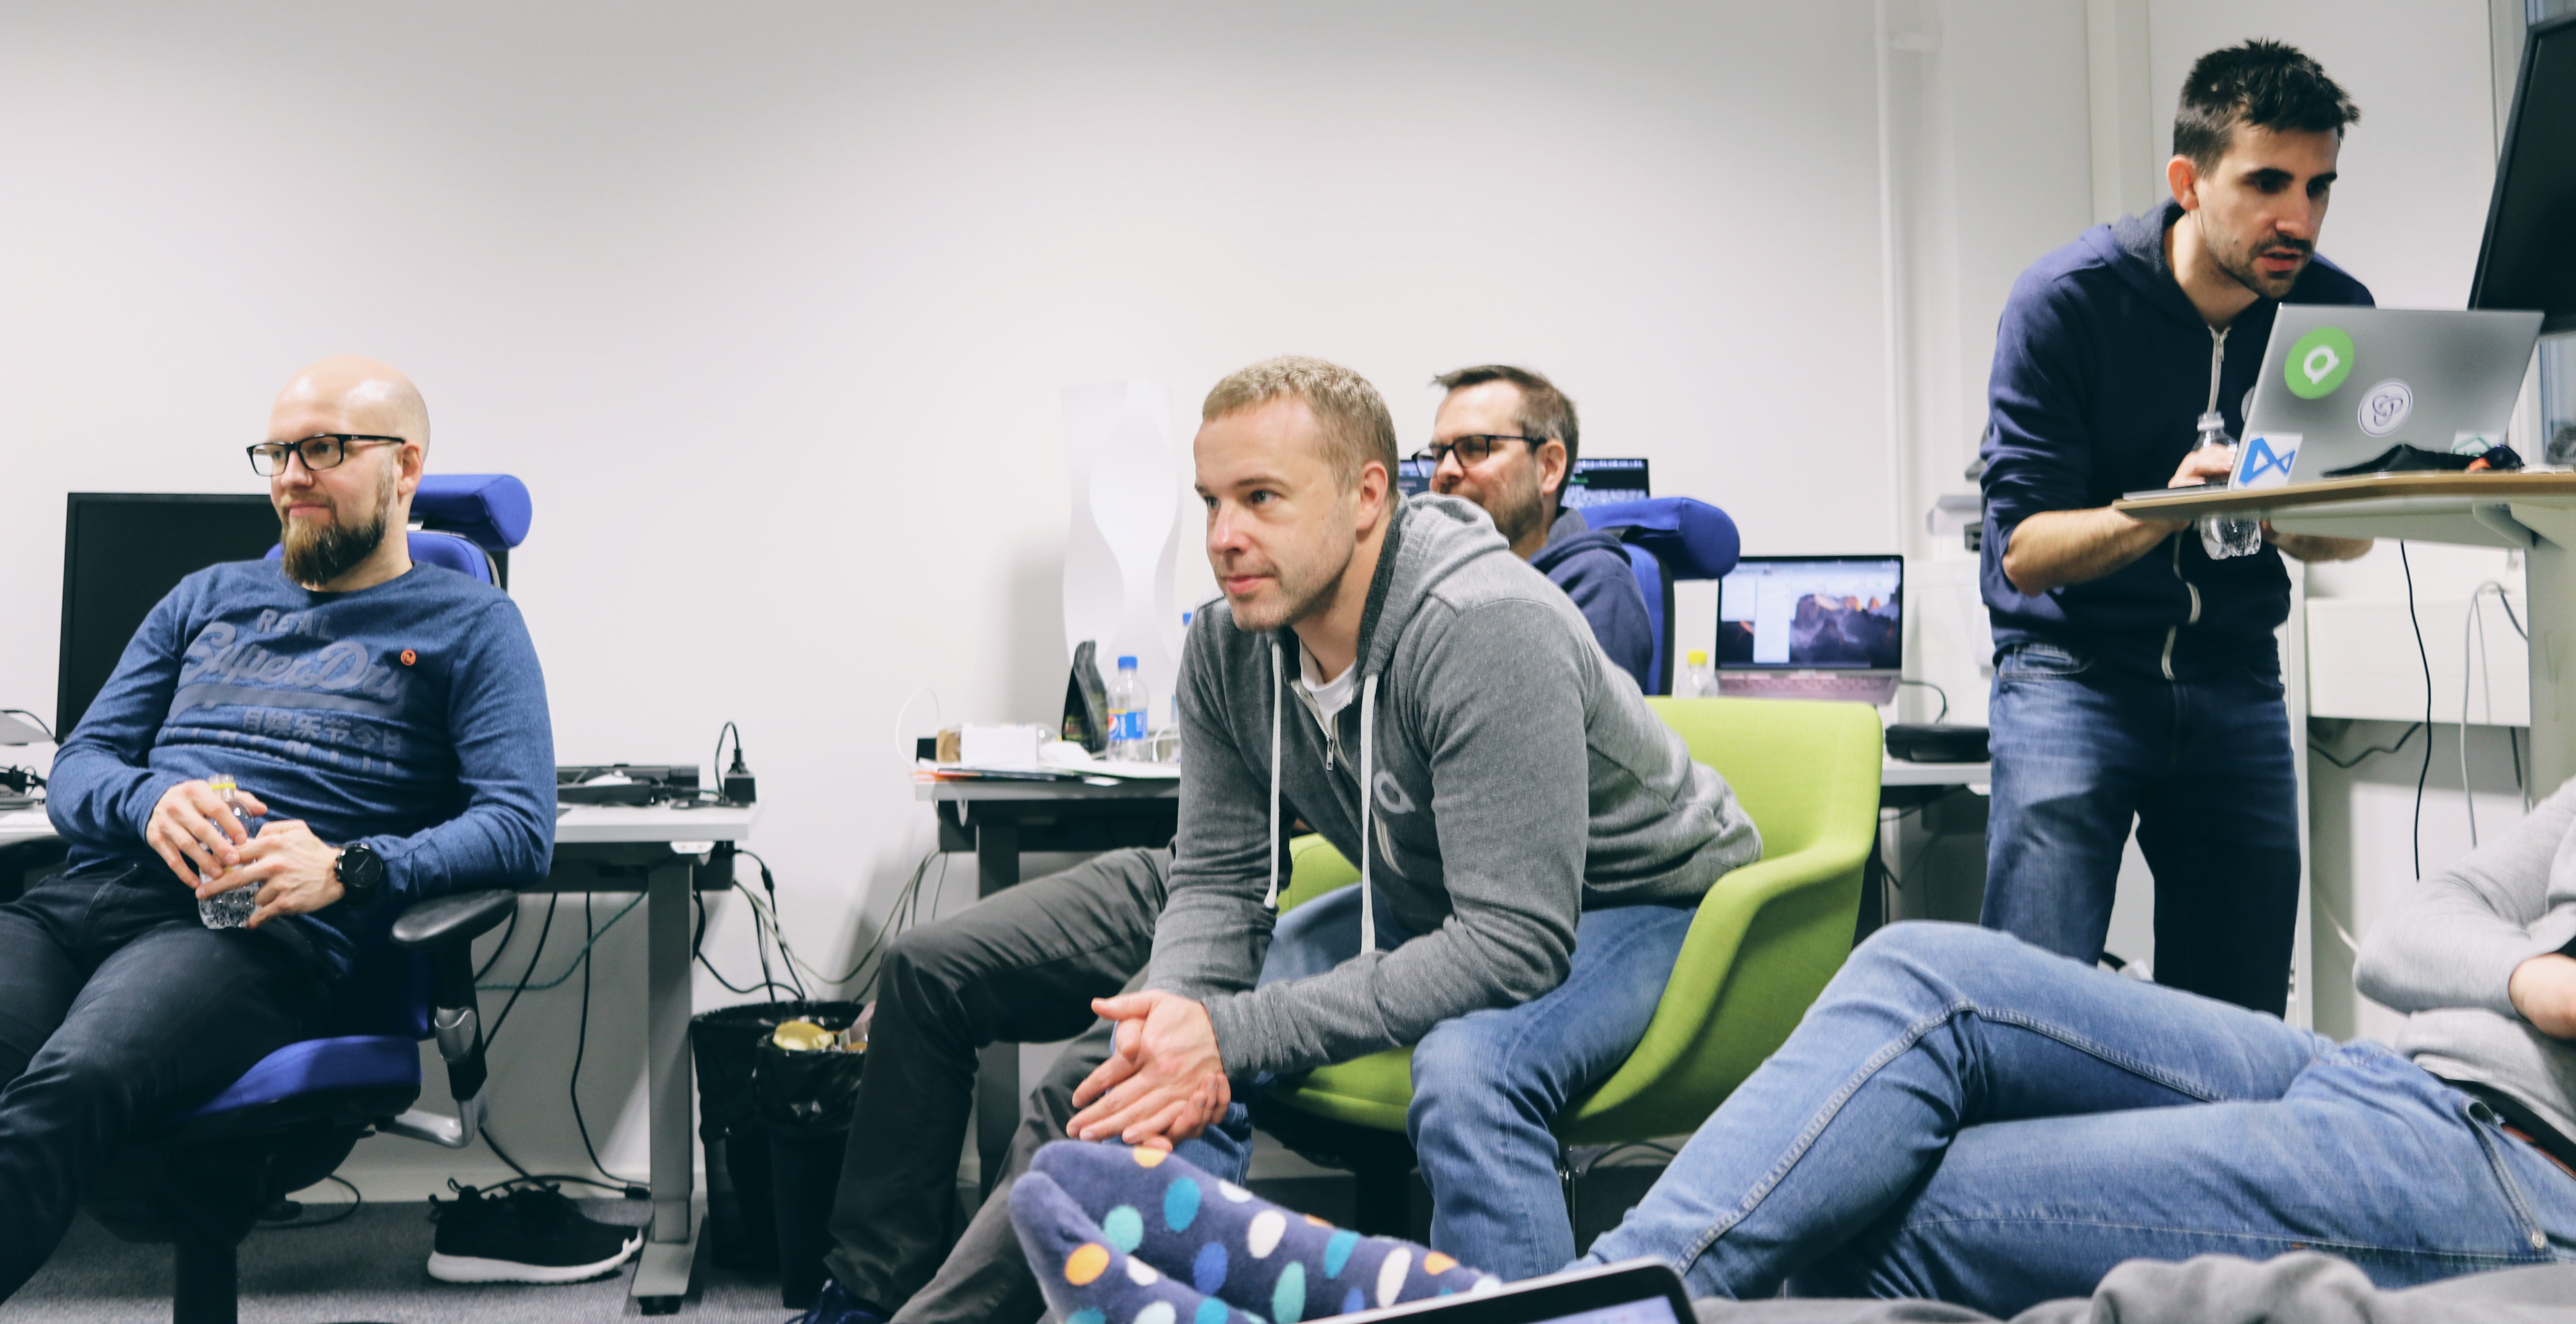 Anssi Soinu and Markus Suominen sitting on a couch.